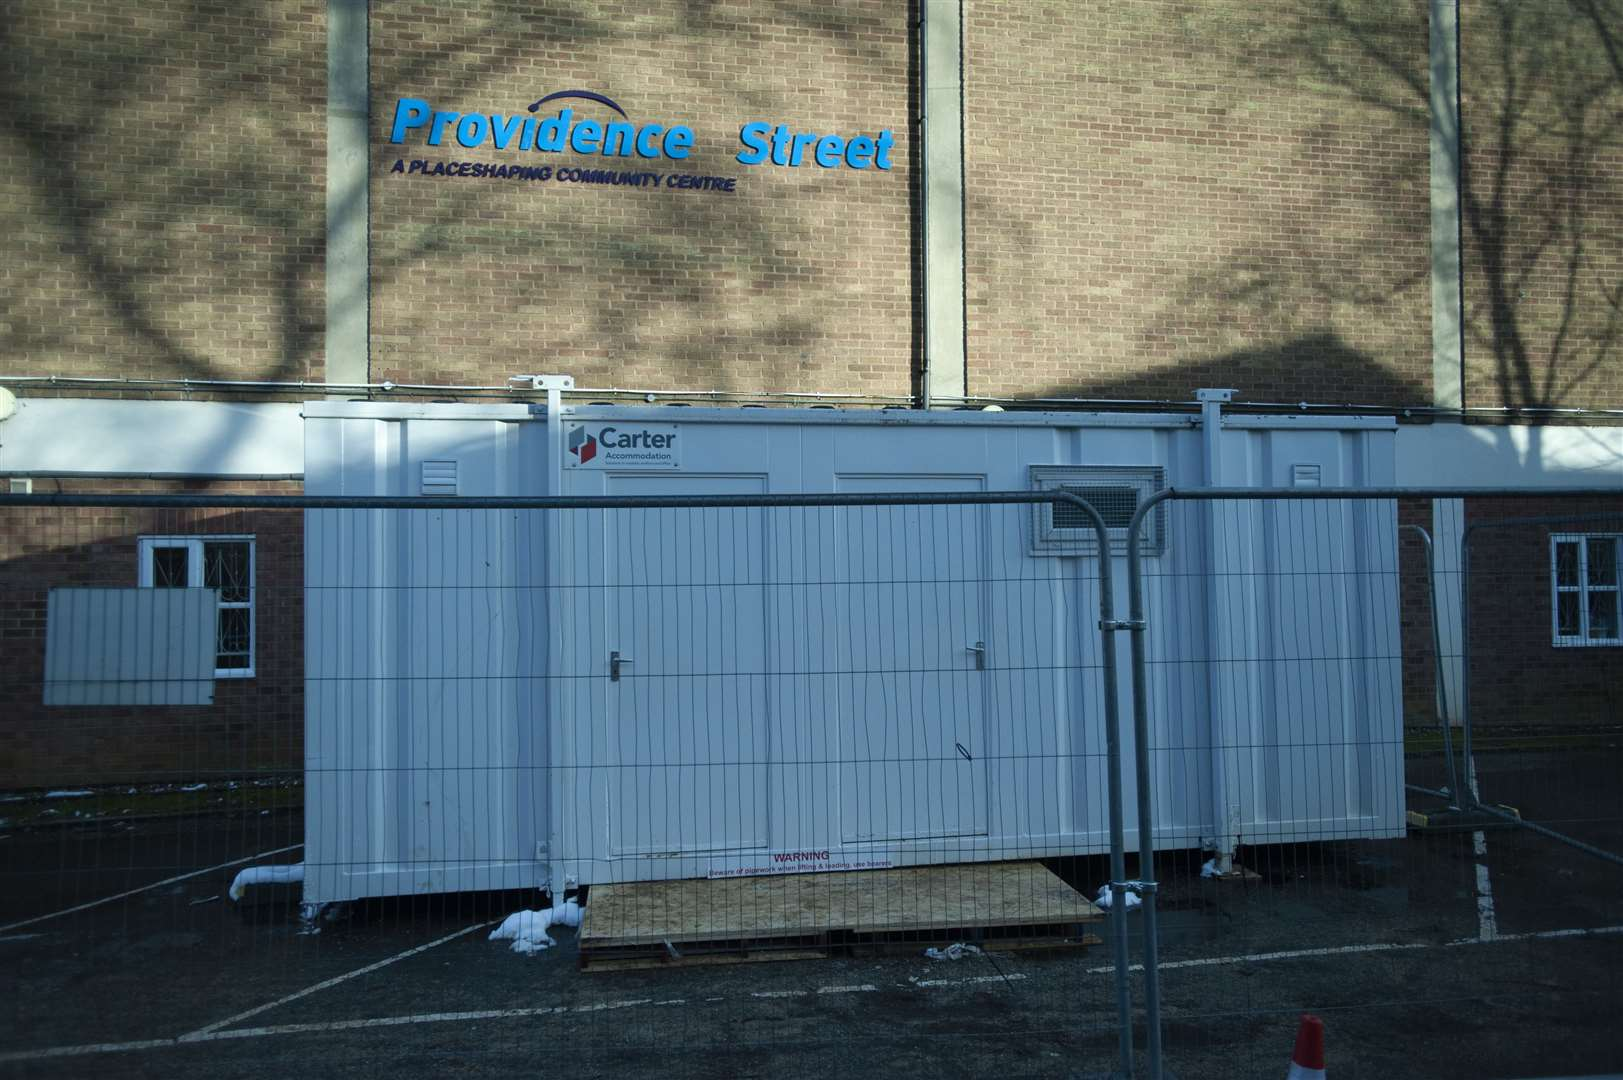 Temporary shower facilities have been set up at the Providence Street community centre.